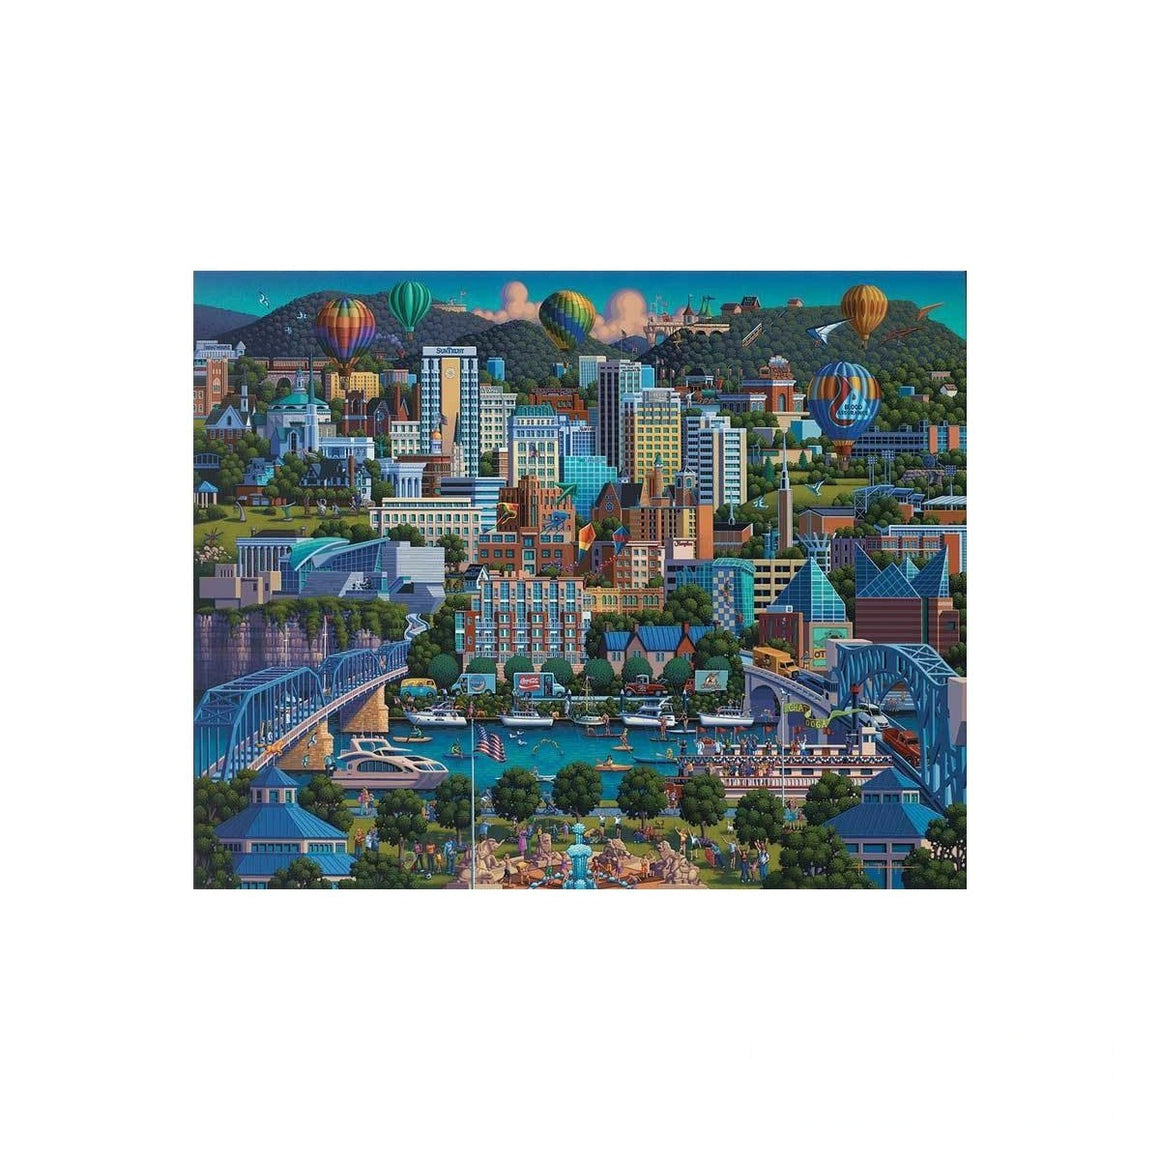 Puzzle: Chattanooga - Dowdle